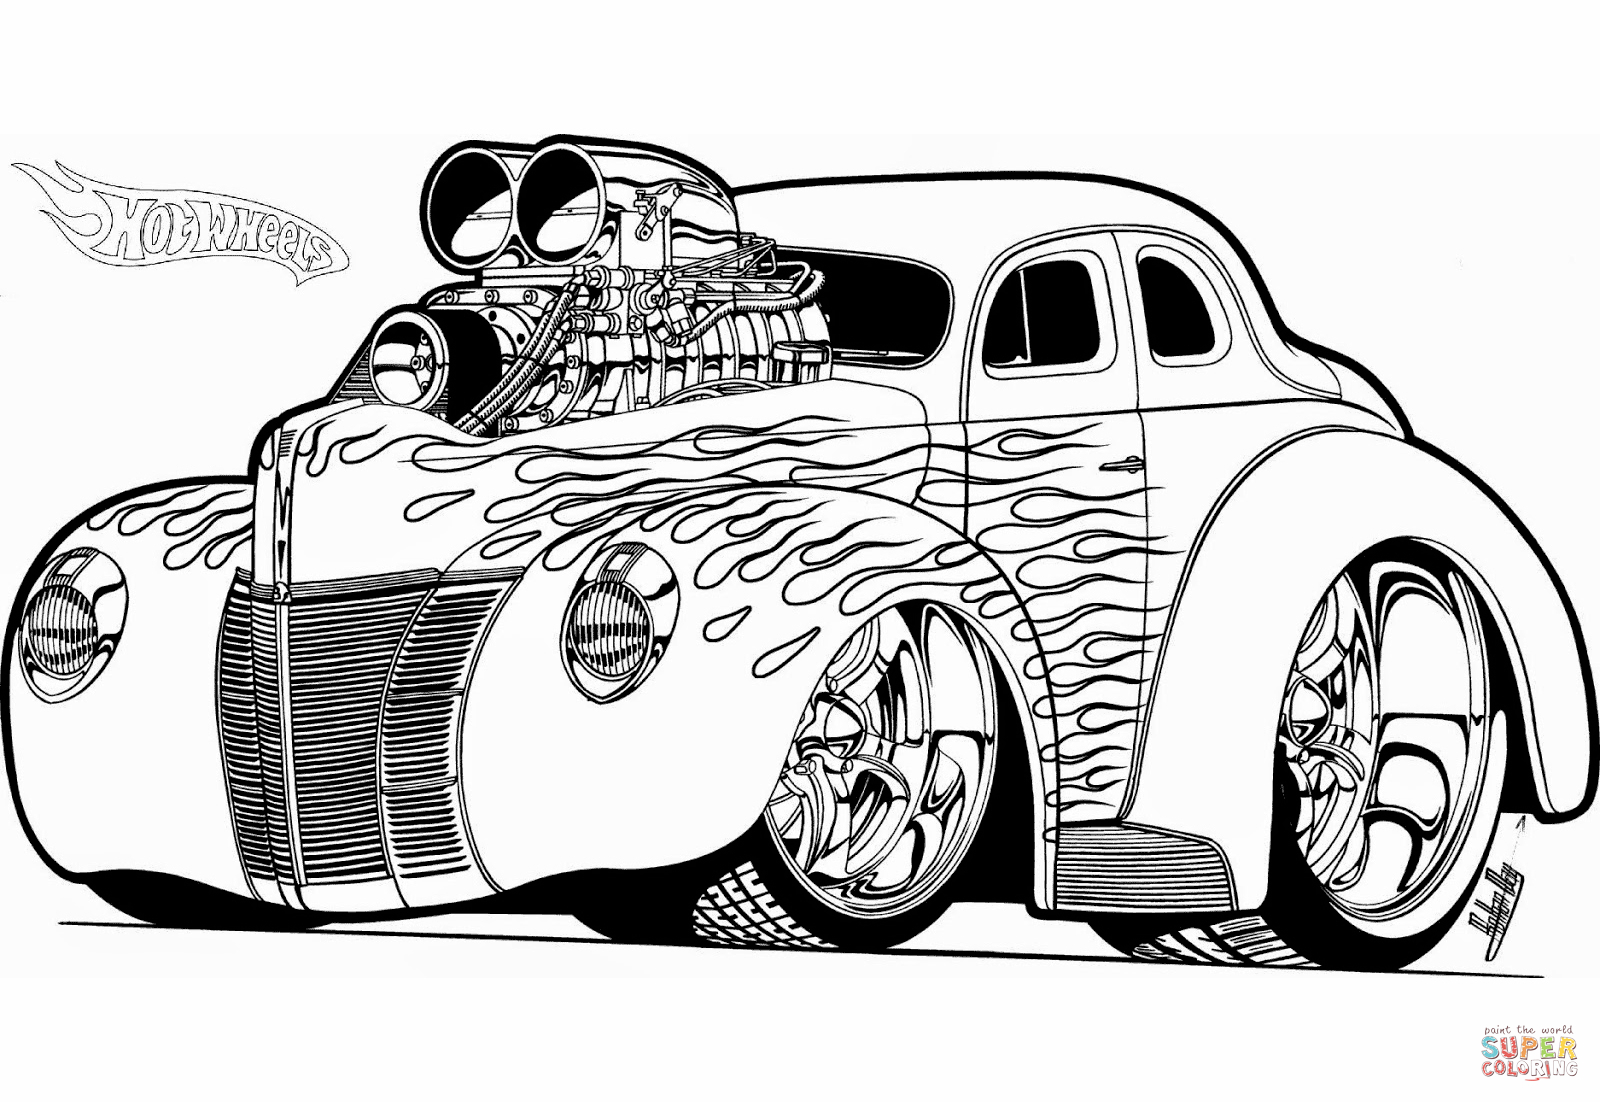 Hot Wheels Hot Rod Coloring Page Gallery Of Coloring Books and Pages Simple Hot Rod Coloring Pages Pinterest Printable